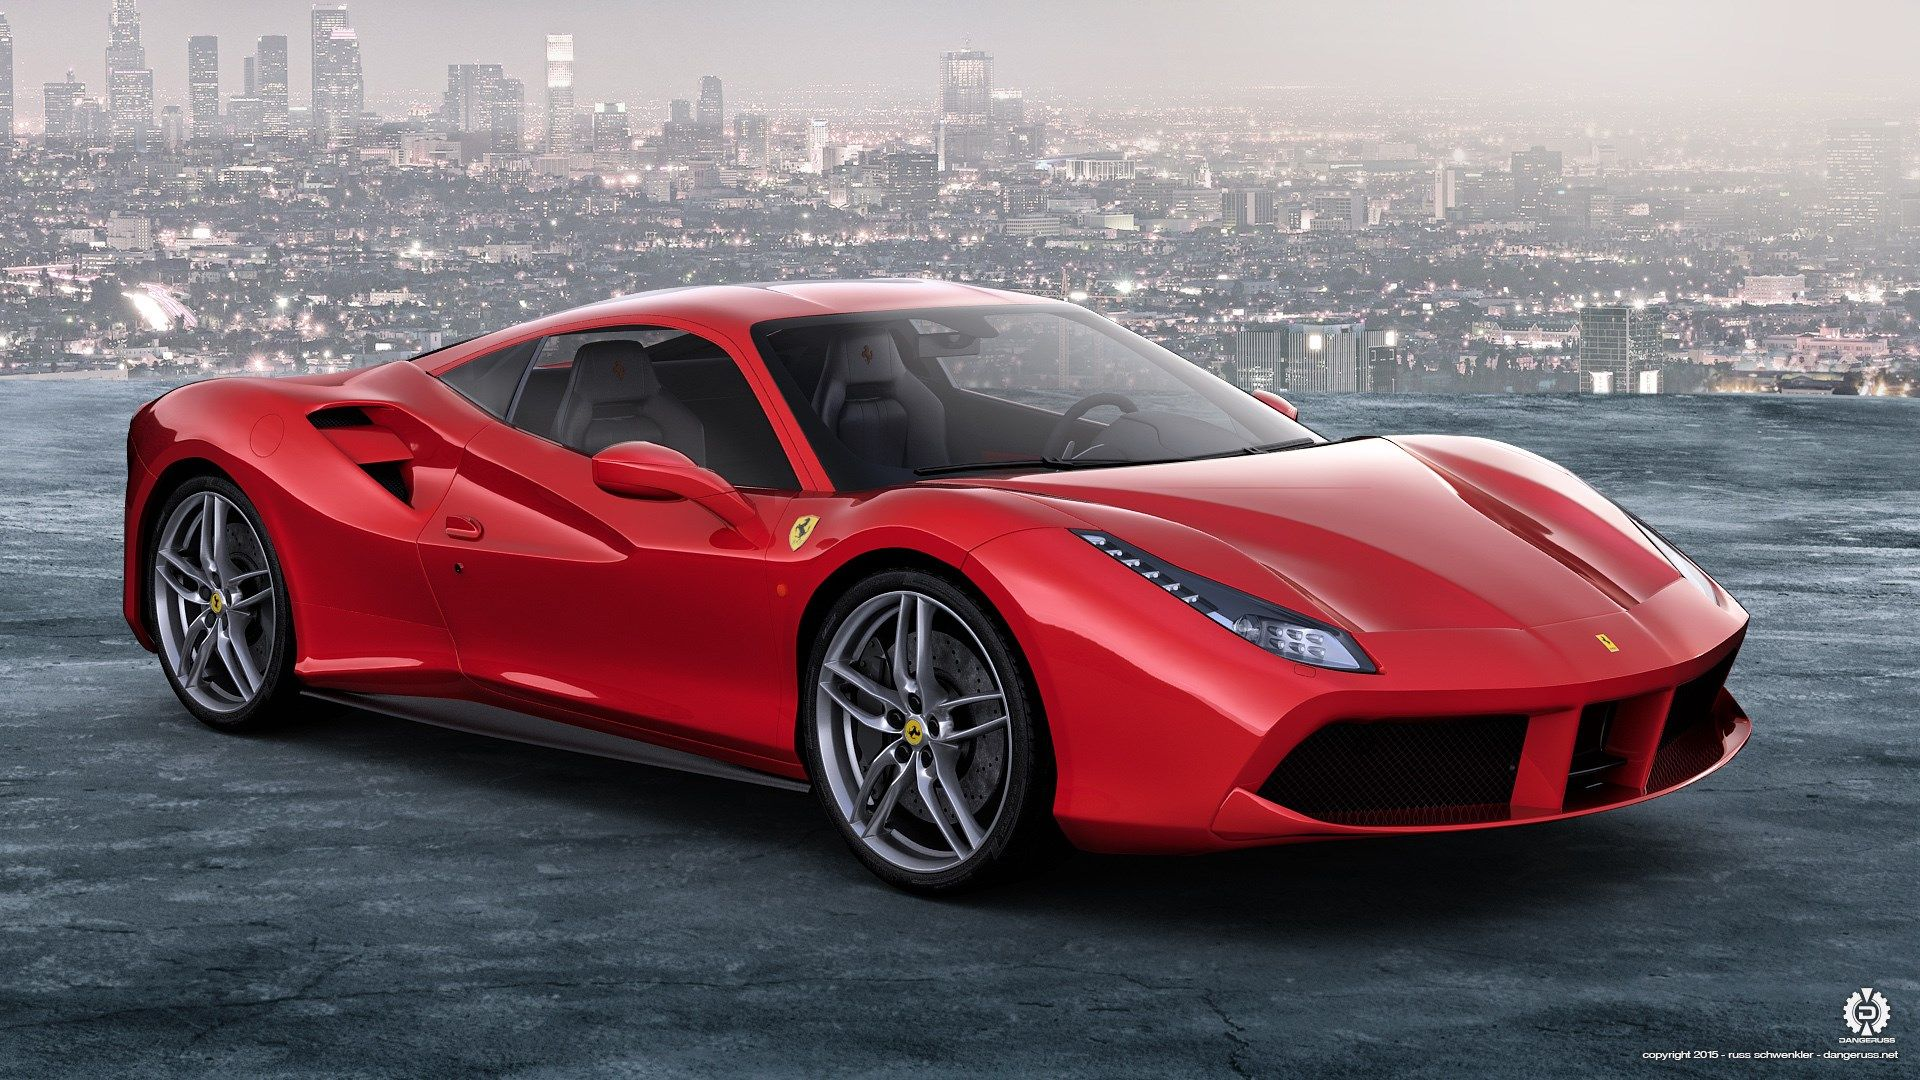 Awesome Ferrari 488 Gtb Wallpaper Ferrari Supercars Wallpaper Ferrari 488